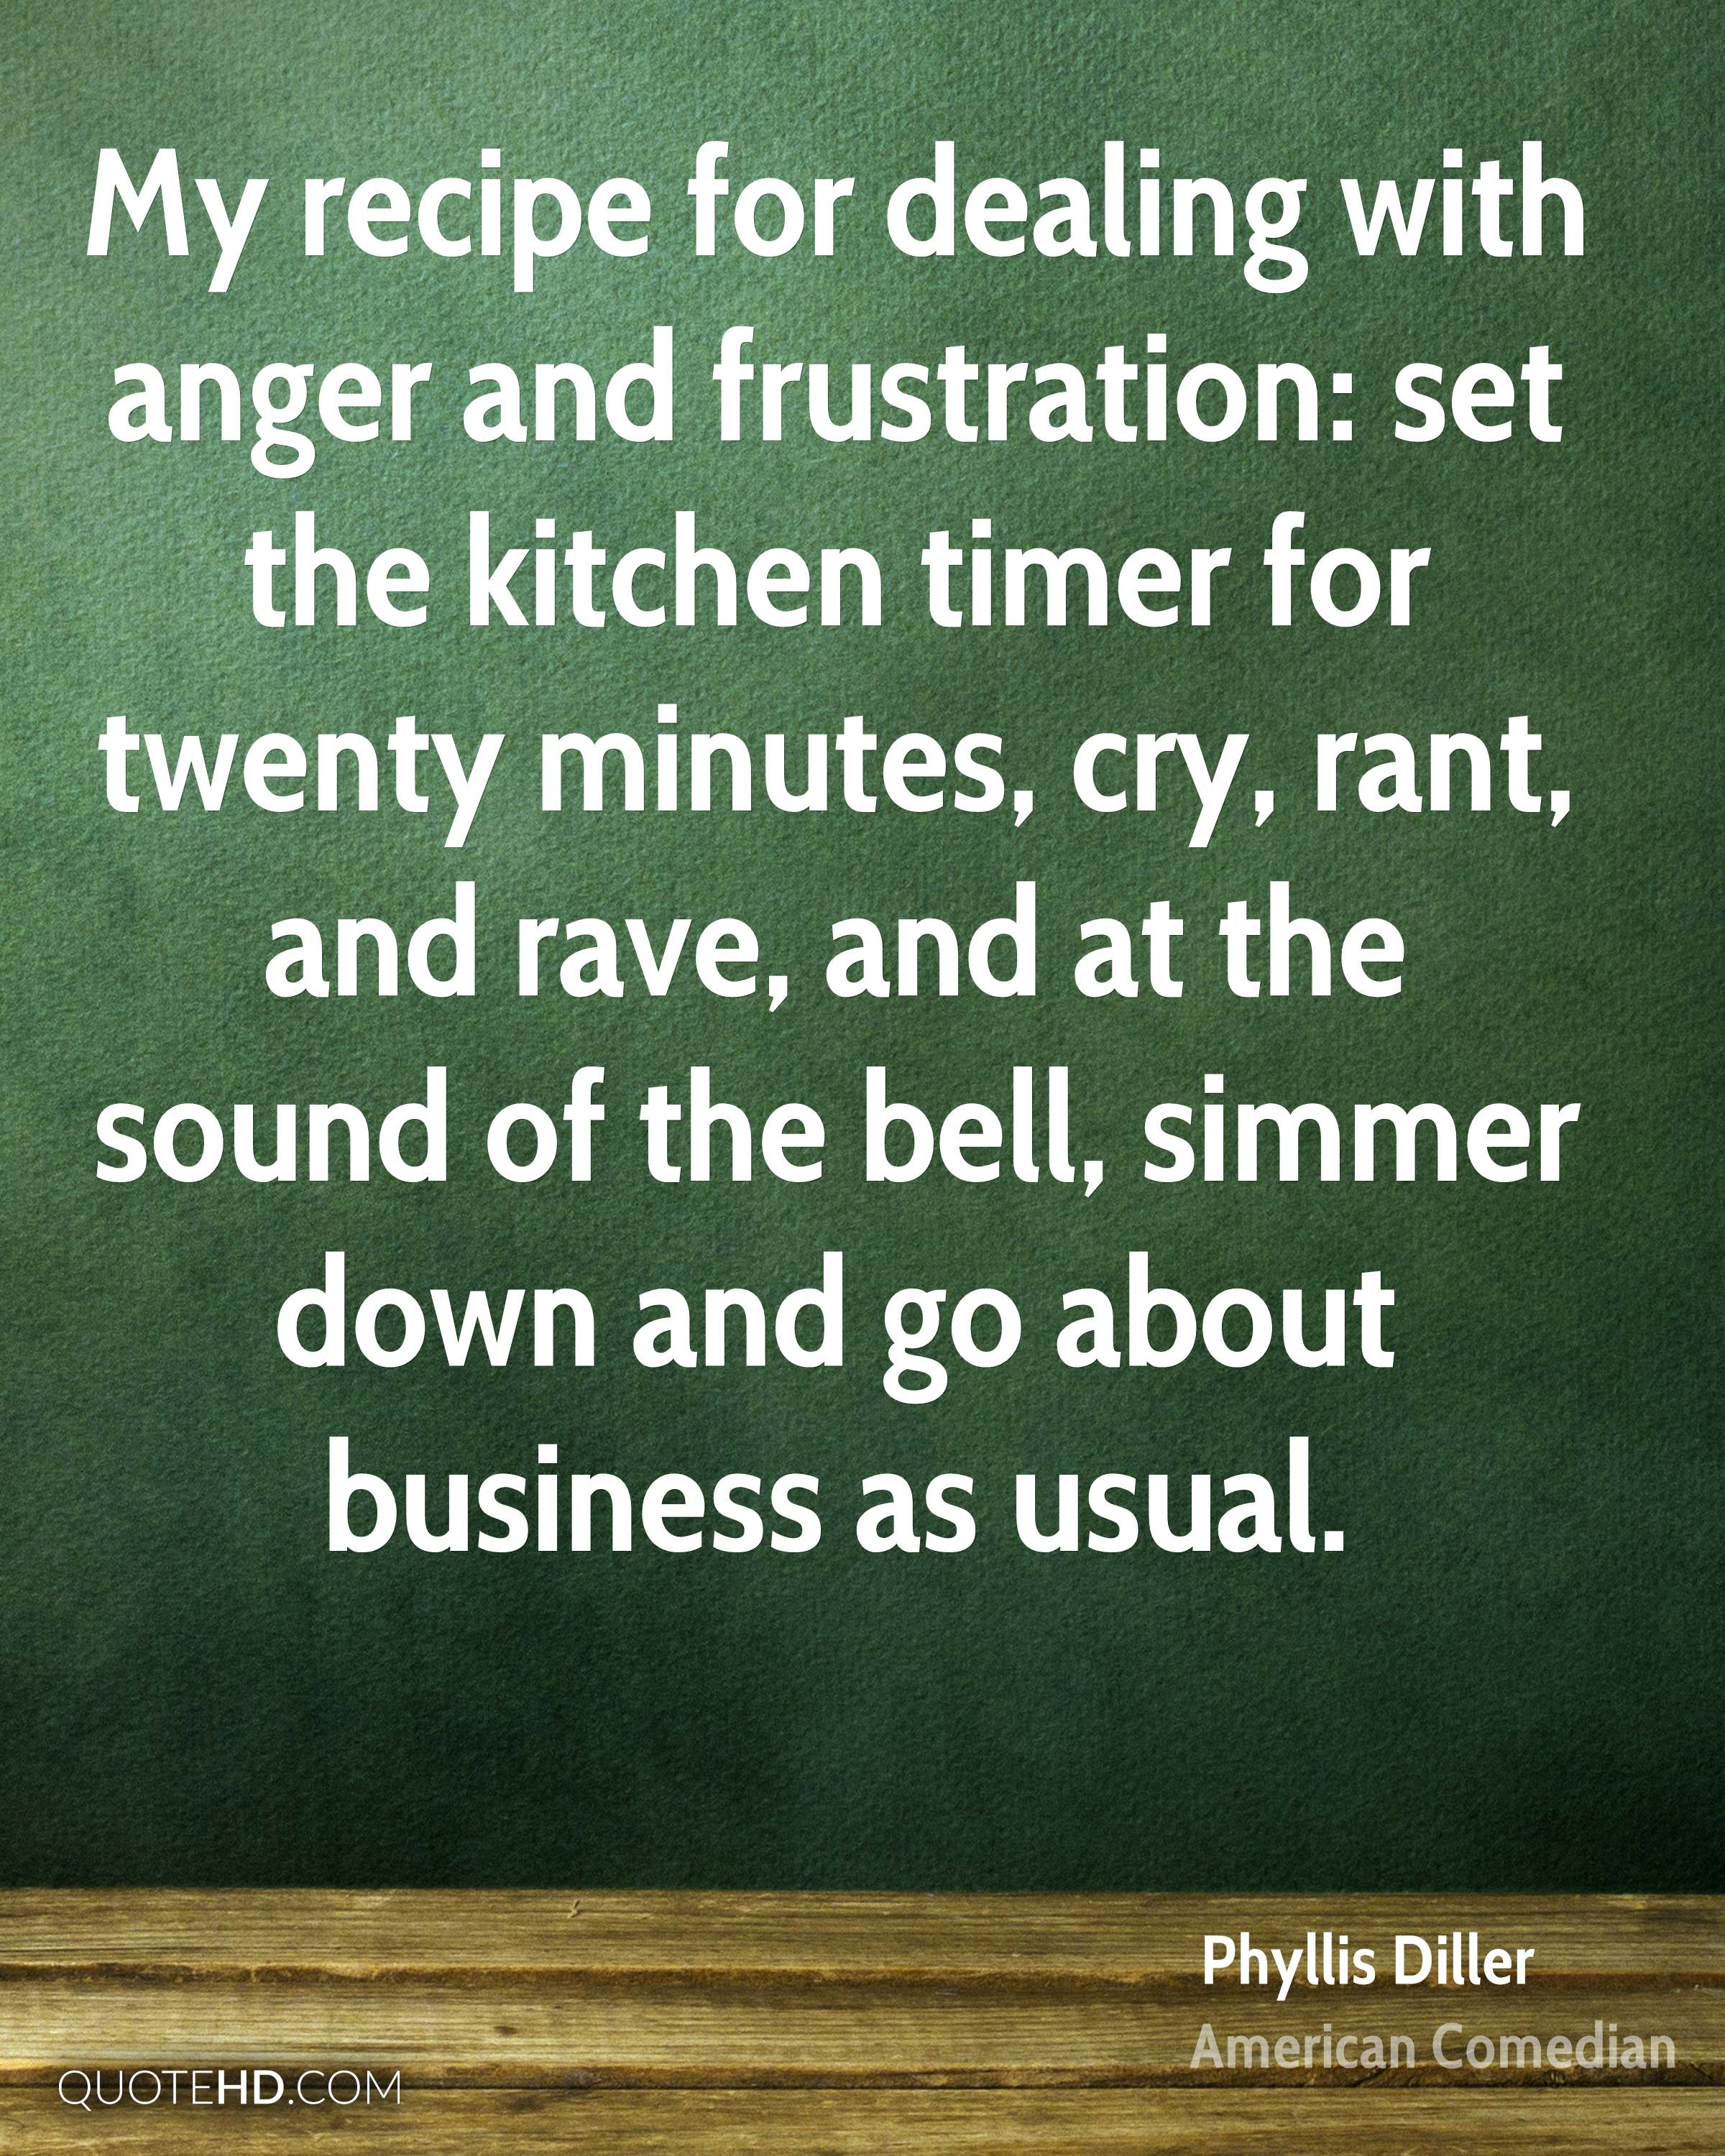 My recipe for dealing with anger and frustration: set the kitchen timer for twenty minutes, cry, rant, and rave, and at the sound of the bell, simmer down and go about business as usual.